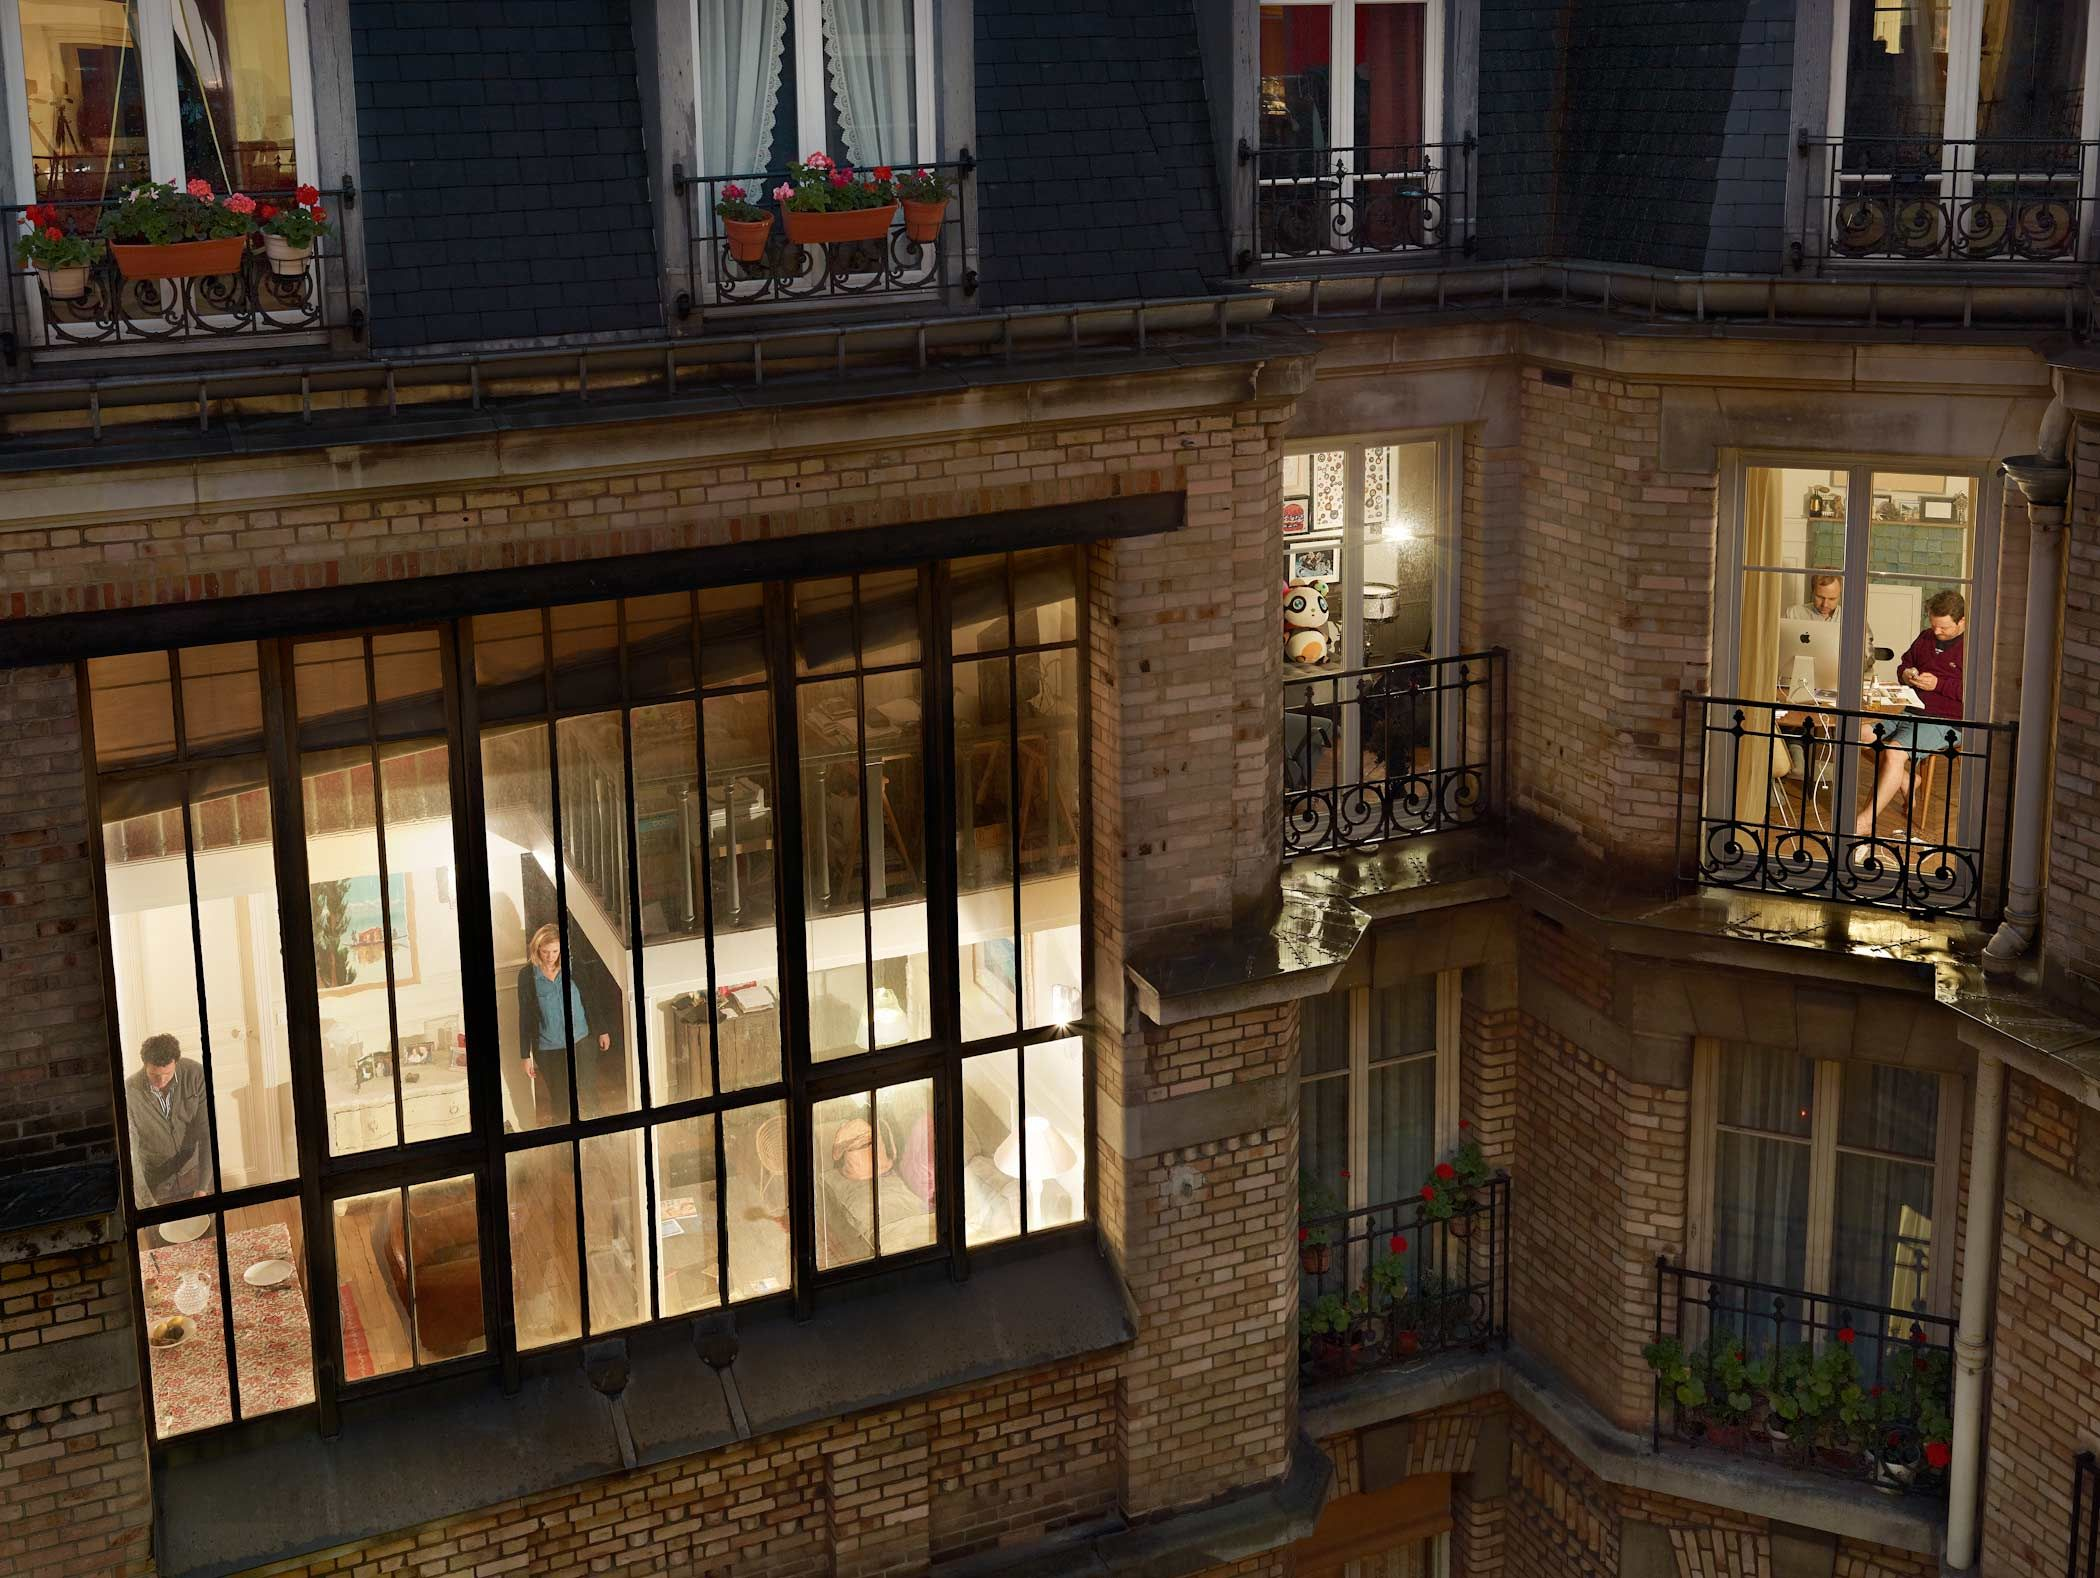 Exclusive first look gail halaban 39 s paris views the cut for Voisine fenetre